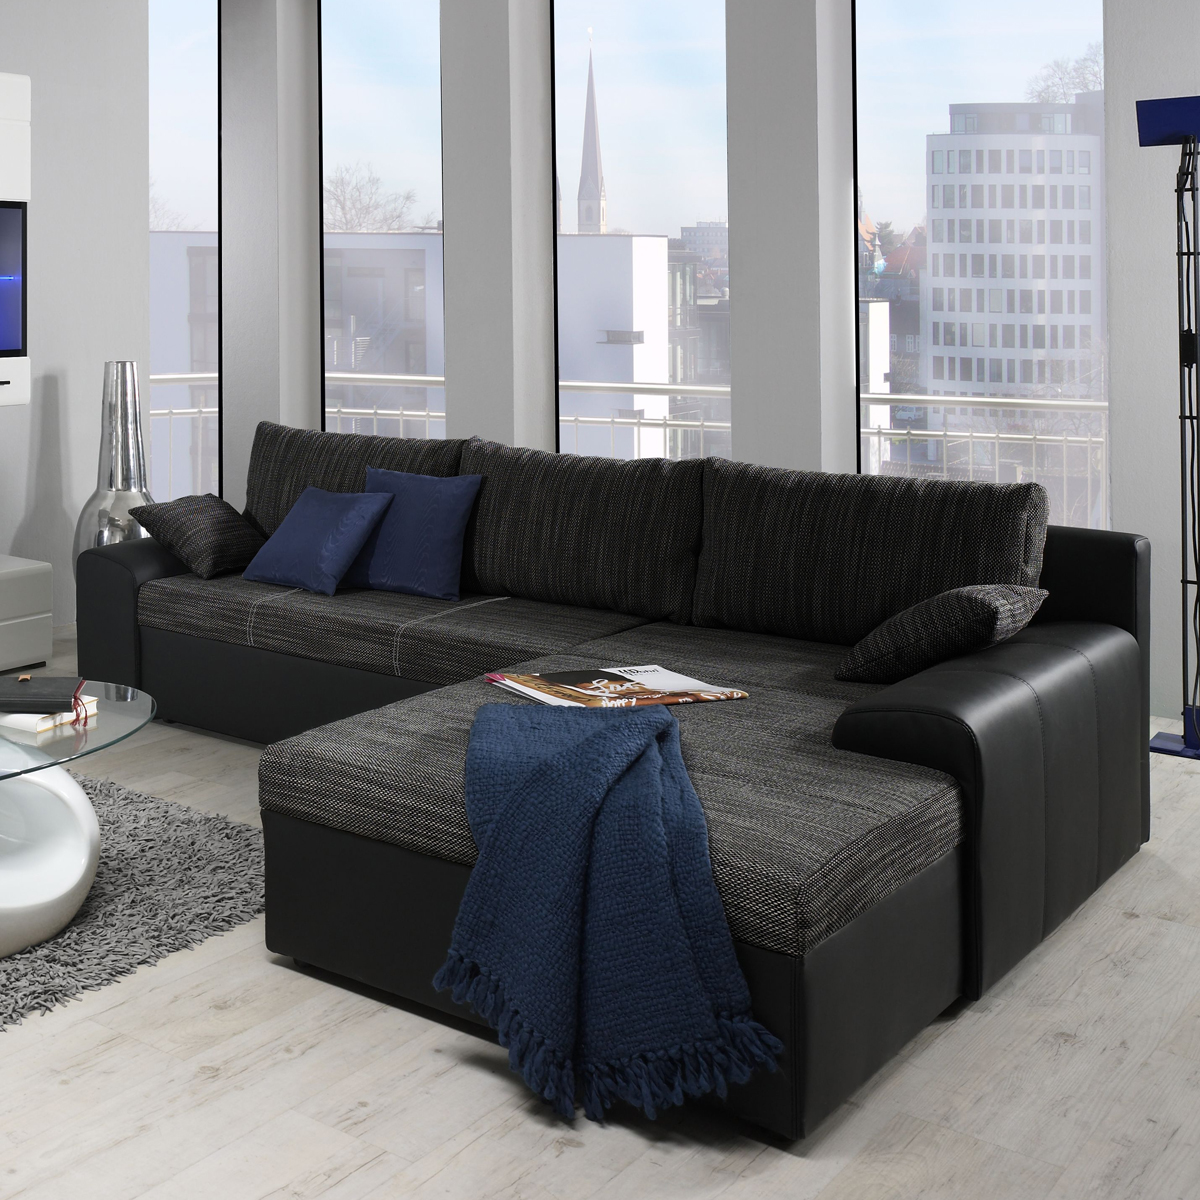 ecksofa snake wohnlandschaft sofa polster in webstoff mit g stebett bettkasten ebay. Black Bedroom Furniture Sets. Home Design Ideas